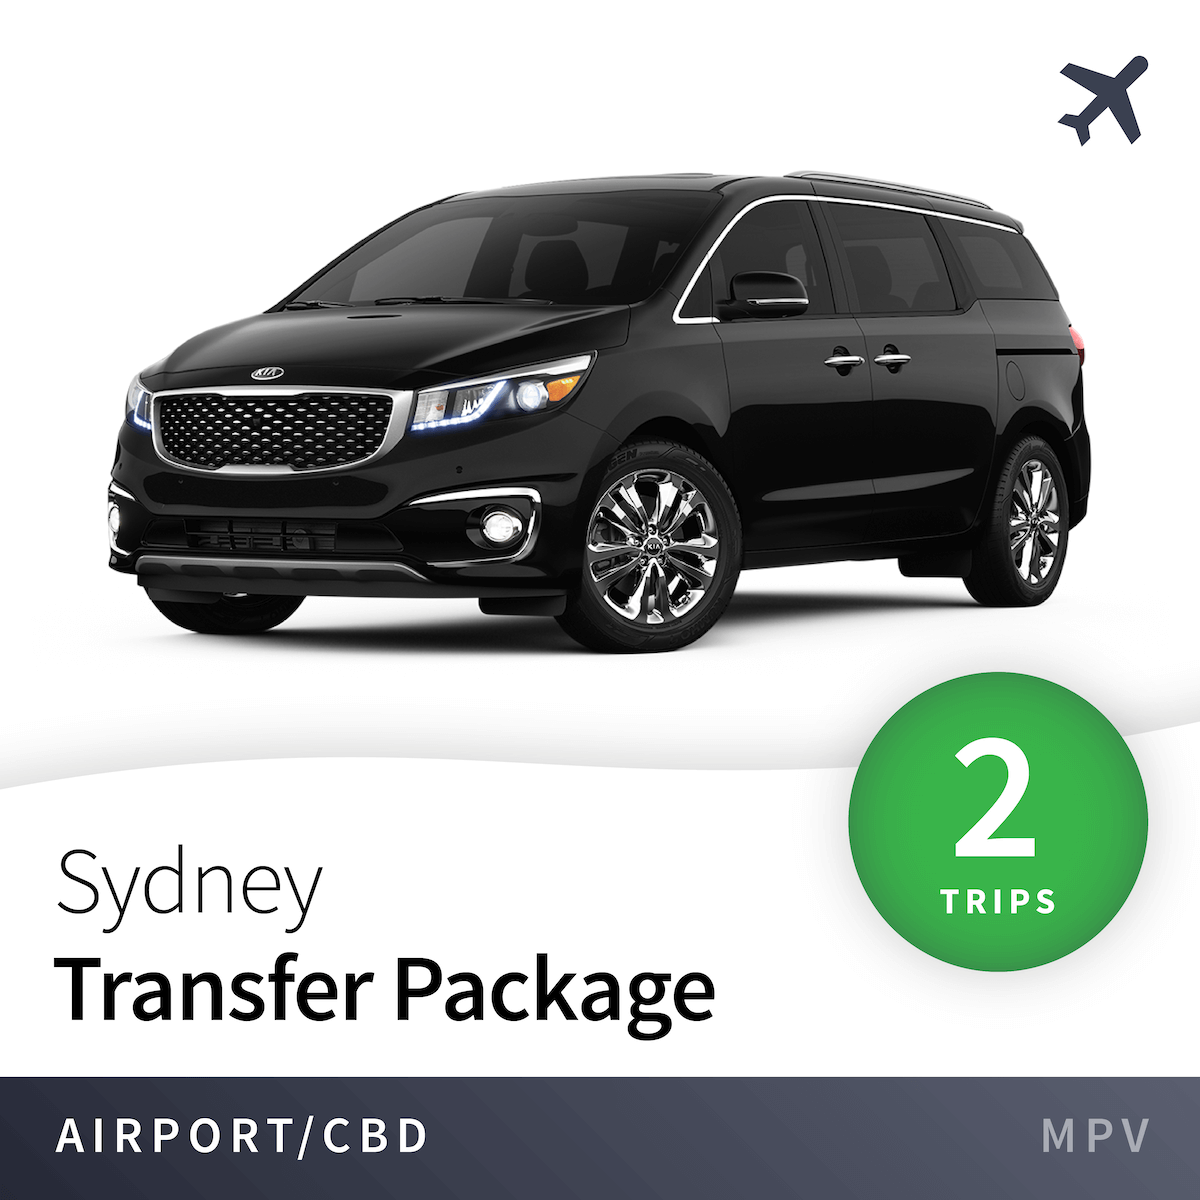 Sydney Airport Transfer Package - MPV (2 Trips) 6